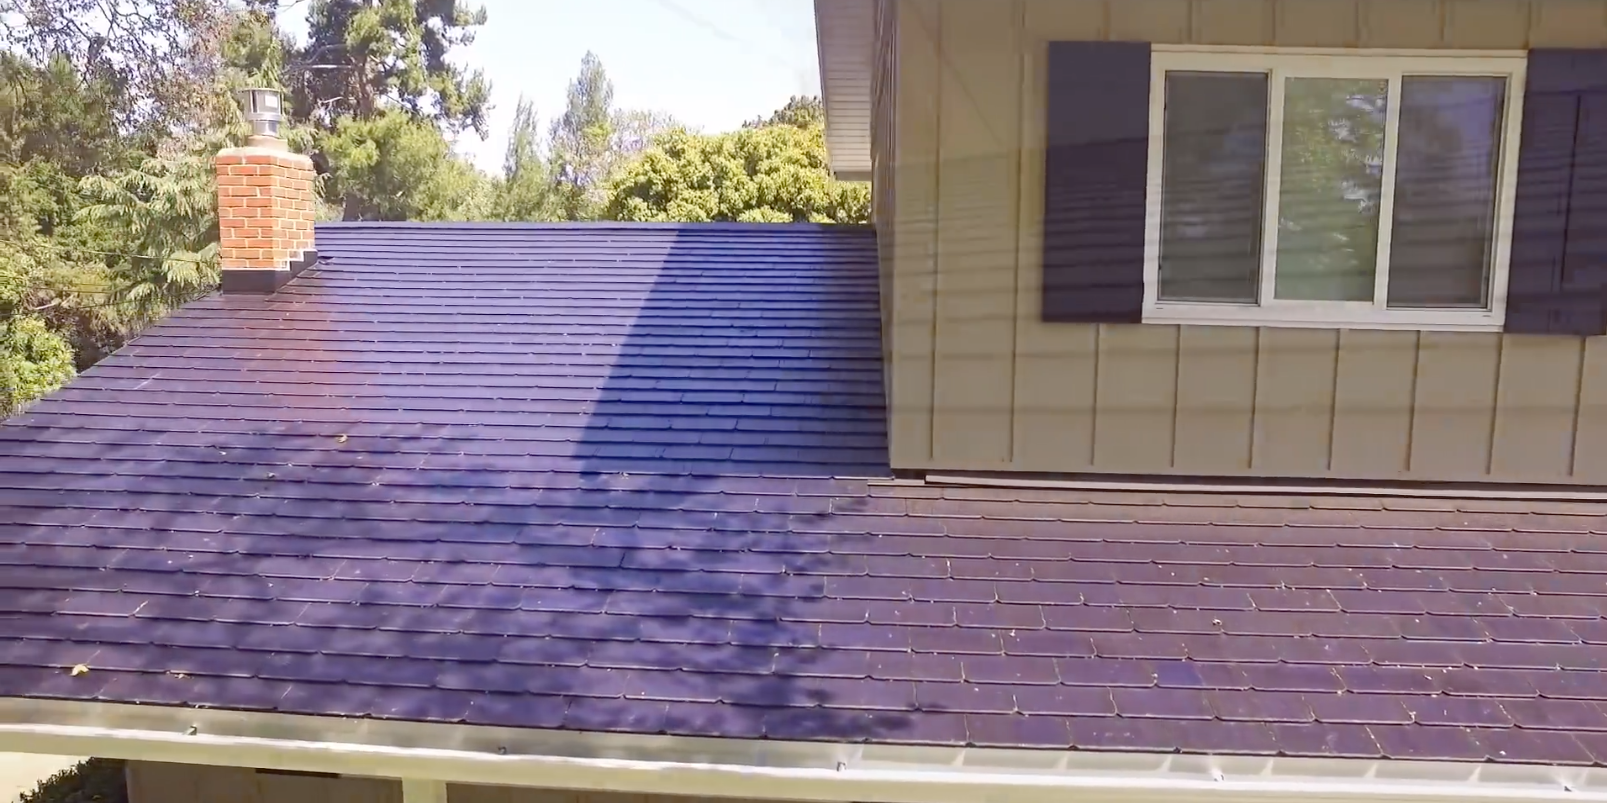 Tesla Solar Roof Owner Reveals the Cost and Surprising Savings in New Video